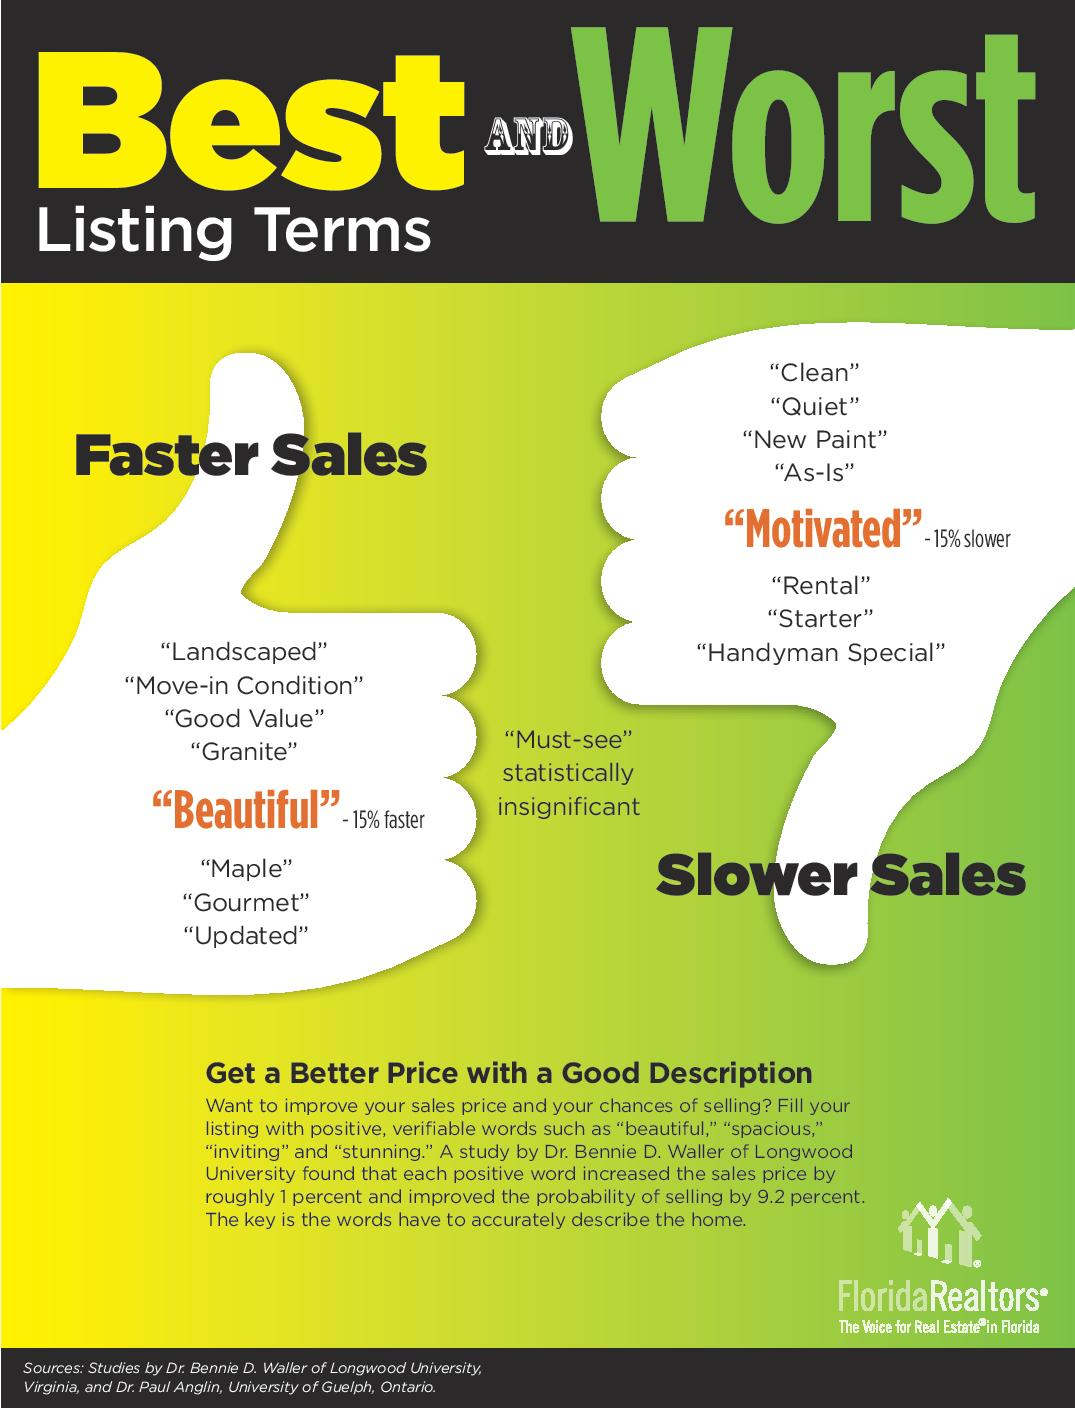 Best And Worst Listing Terms